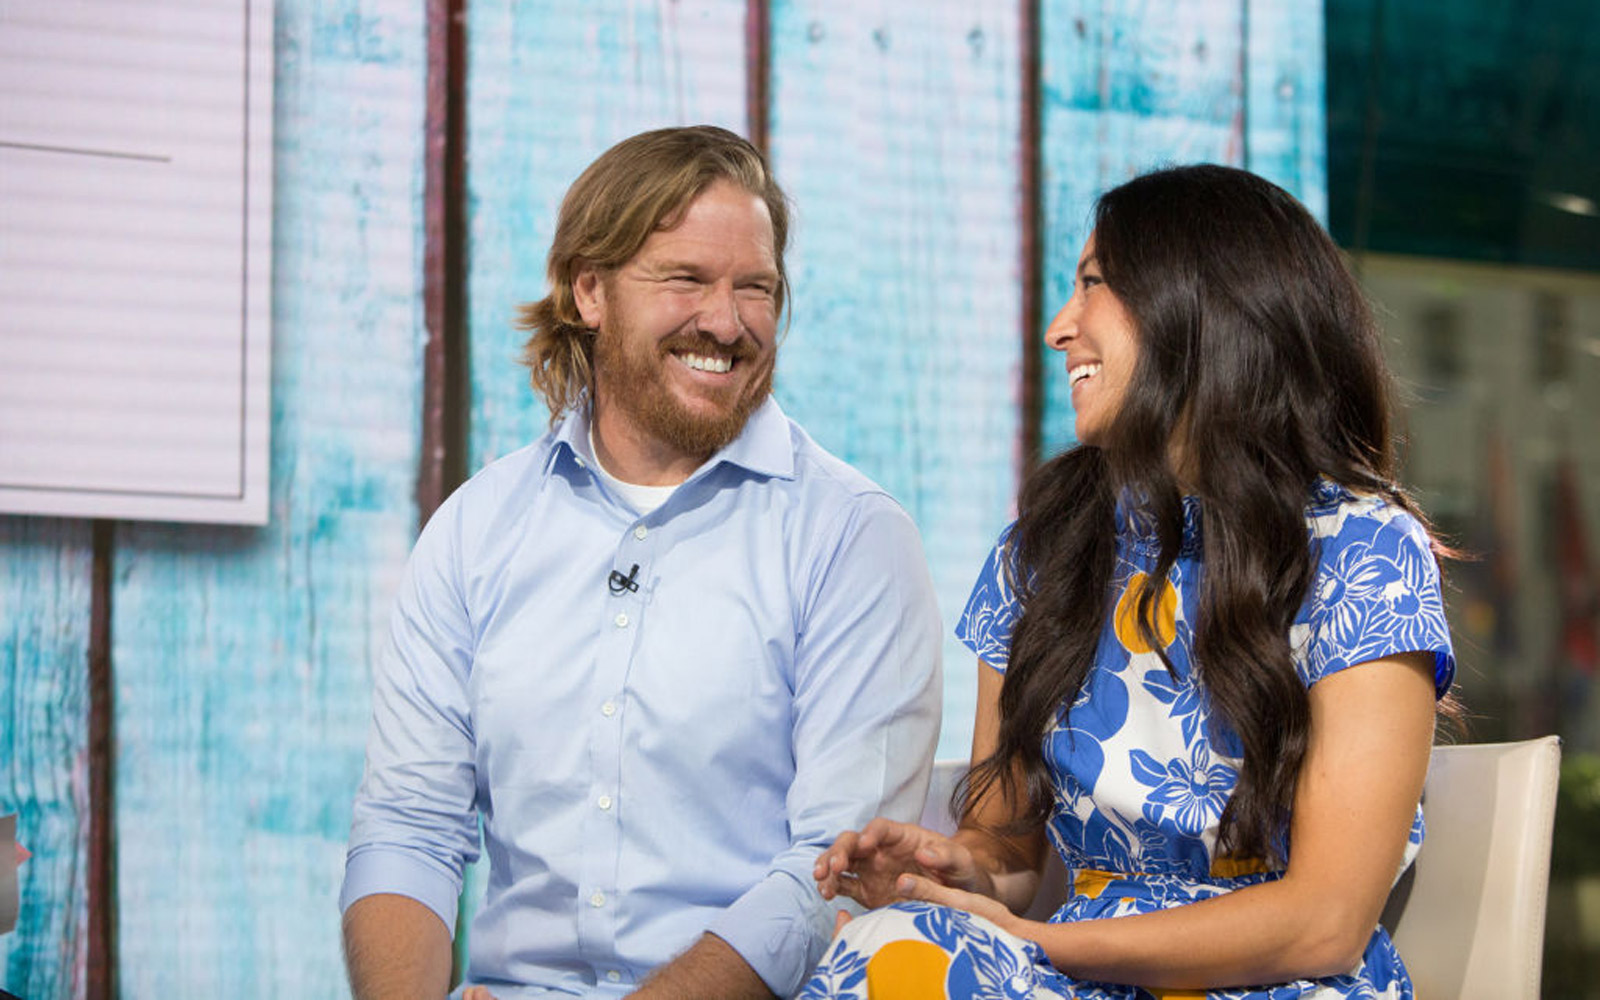 TODAY -- Pictured: Chip and Joanna Gaines on Tuesday, July 18, 2017